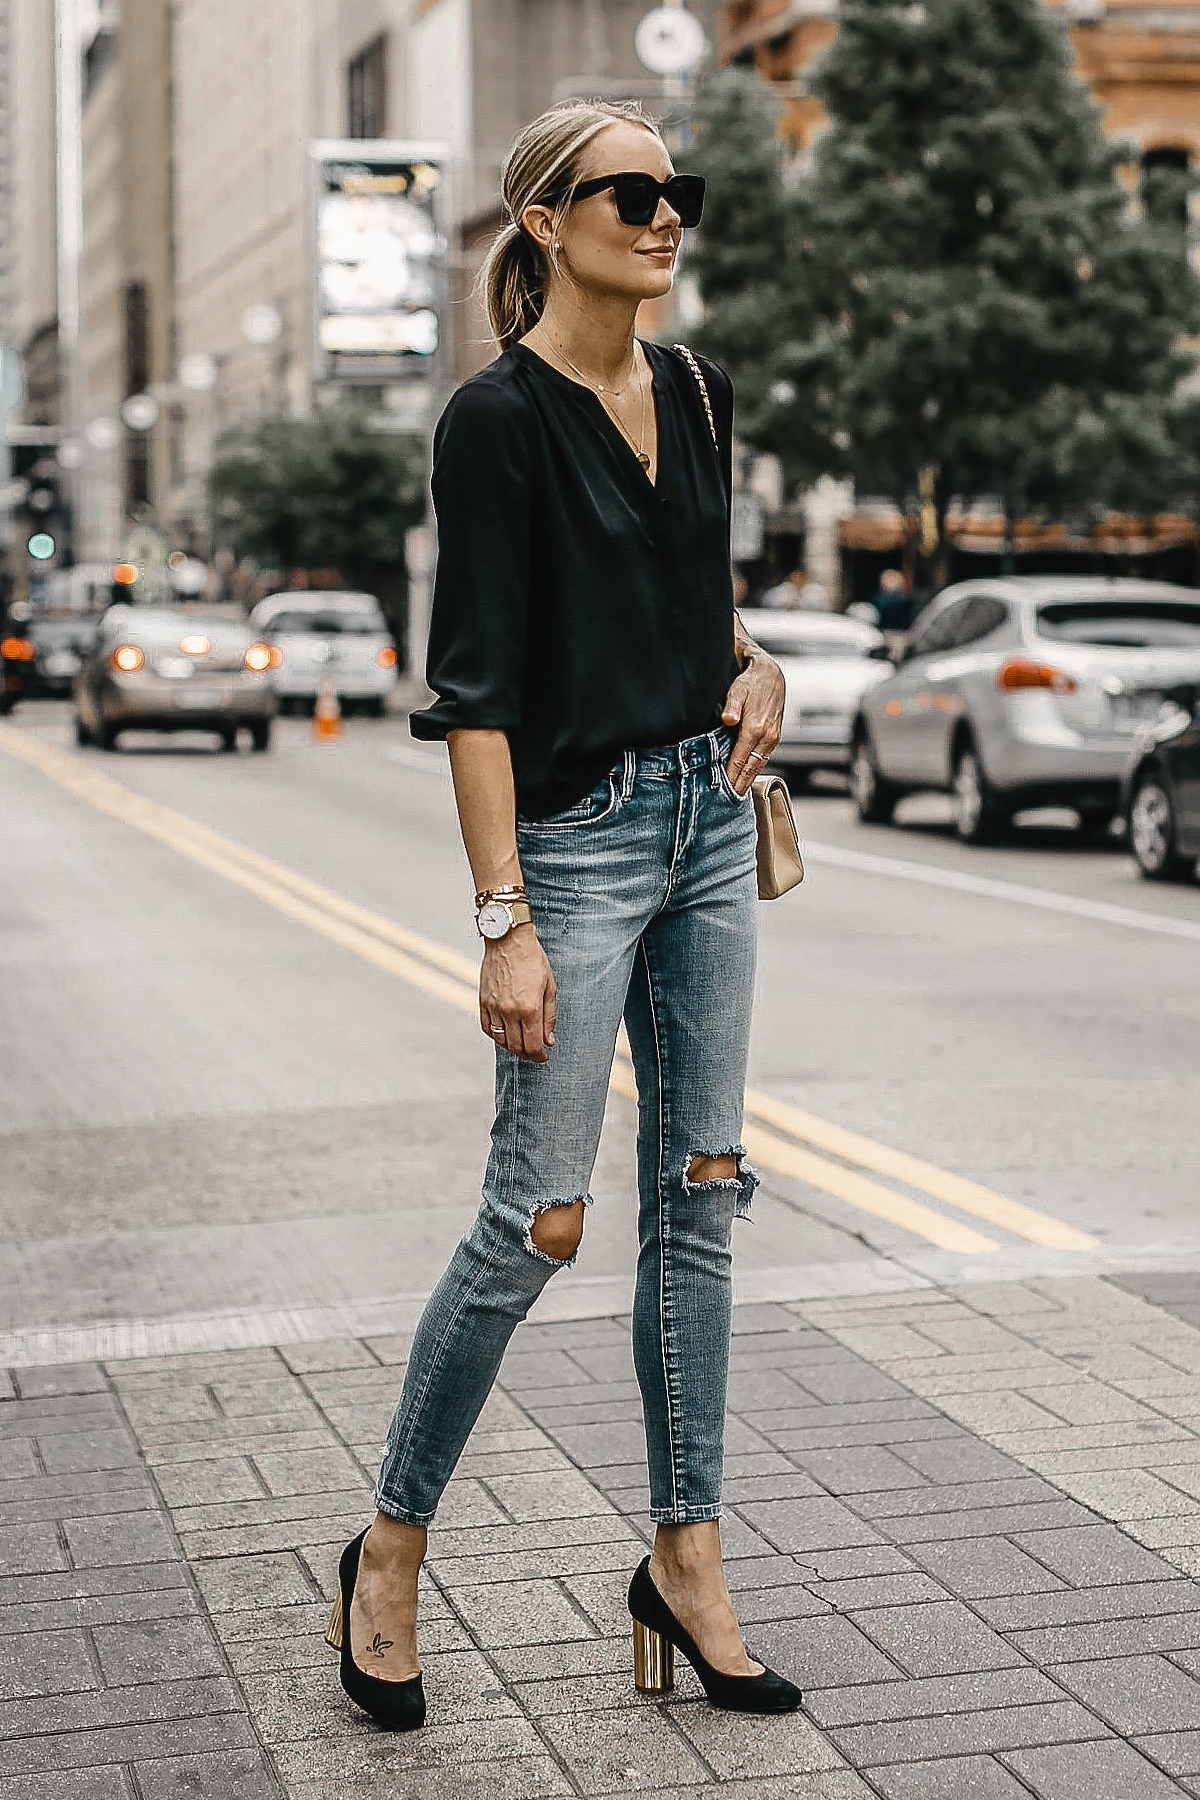 Blonde Woman Wearing Black Top Blanknyc Ripped Denim Skinny Jeans Salvatore Ferragamo Black Pumps Fashion Jackson Dallas Blogger Fashion Blogger Street Style